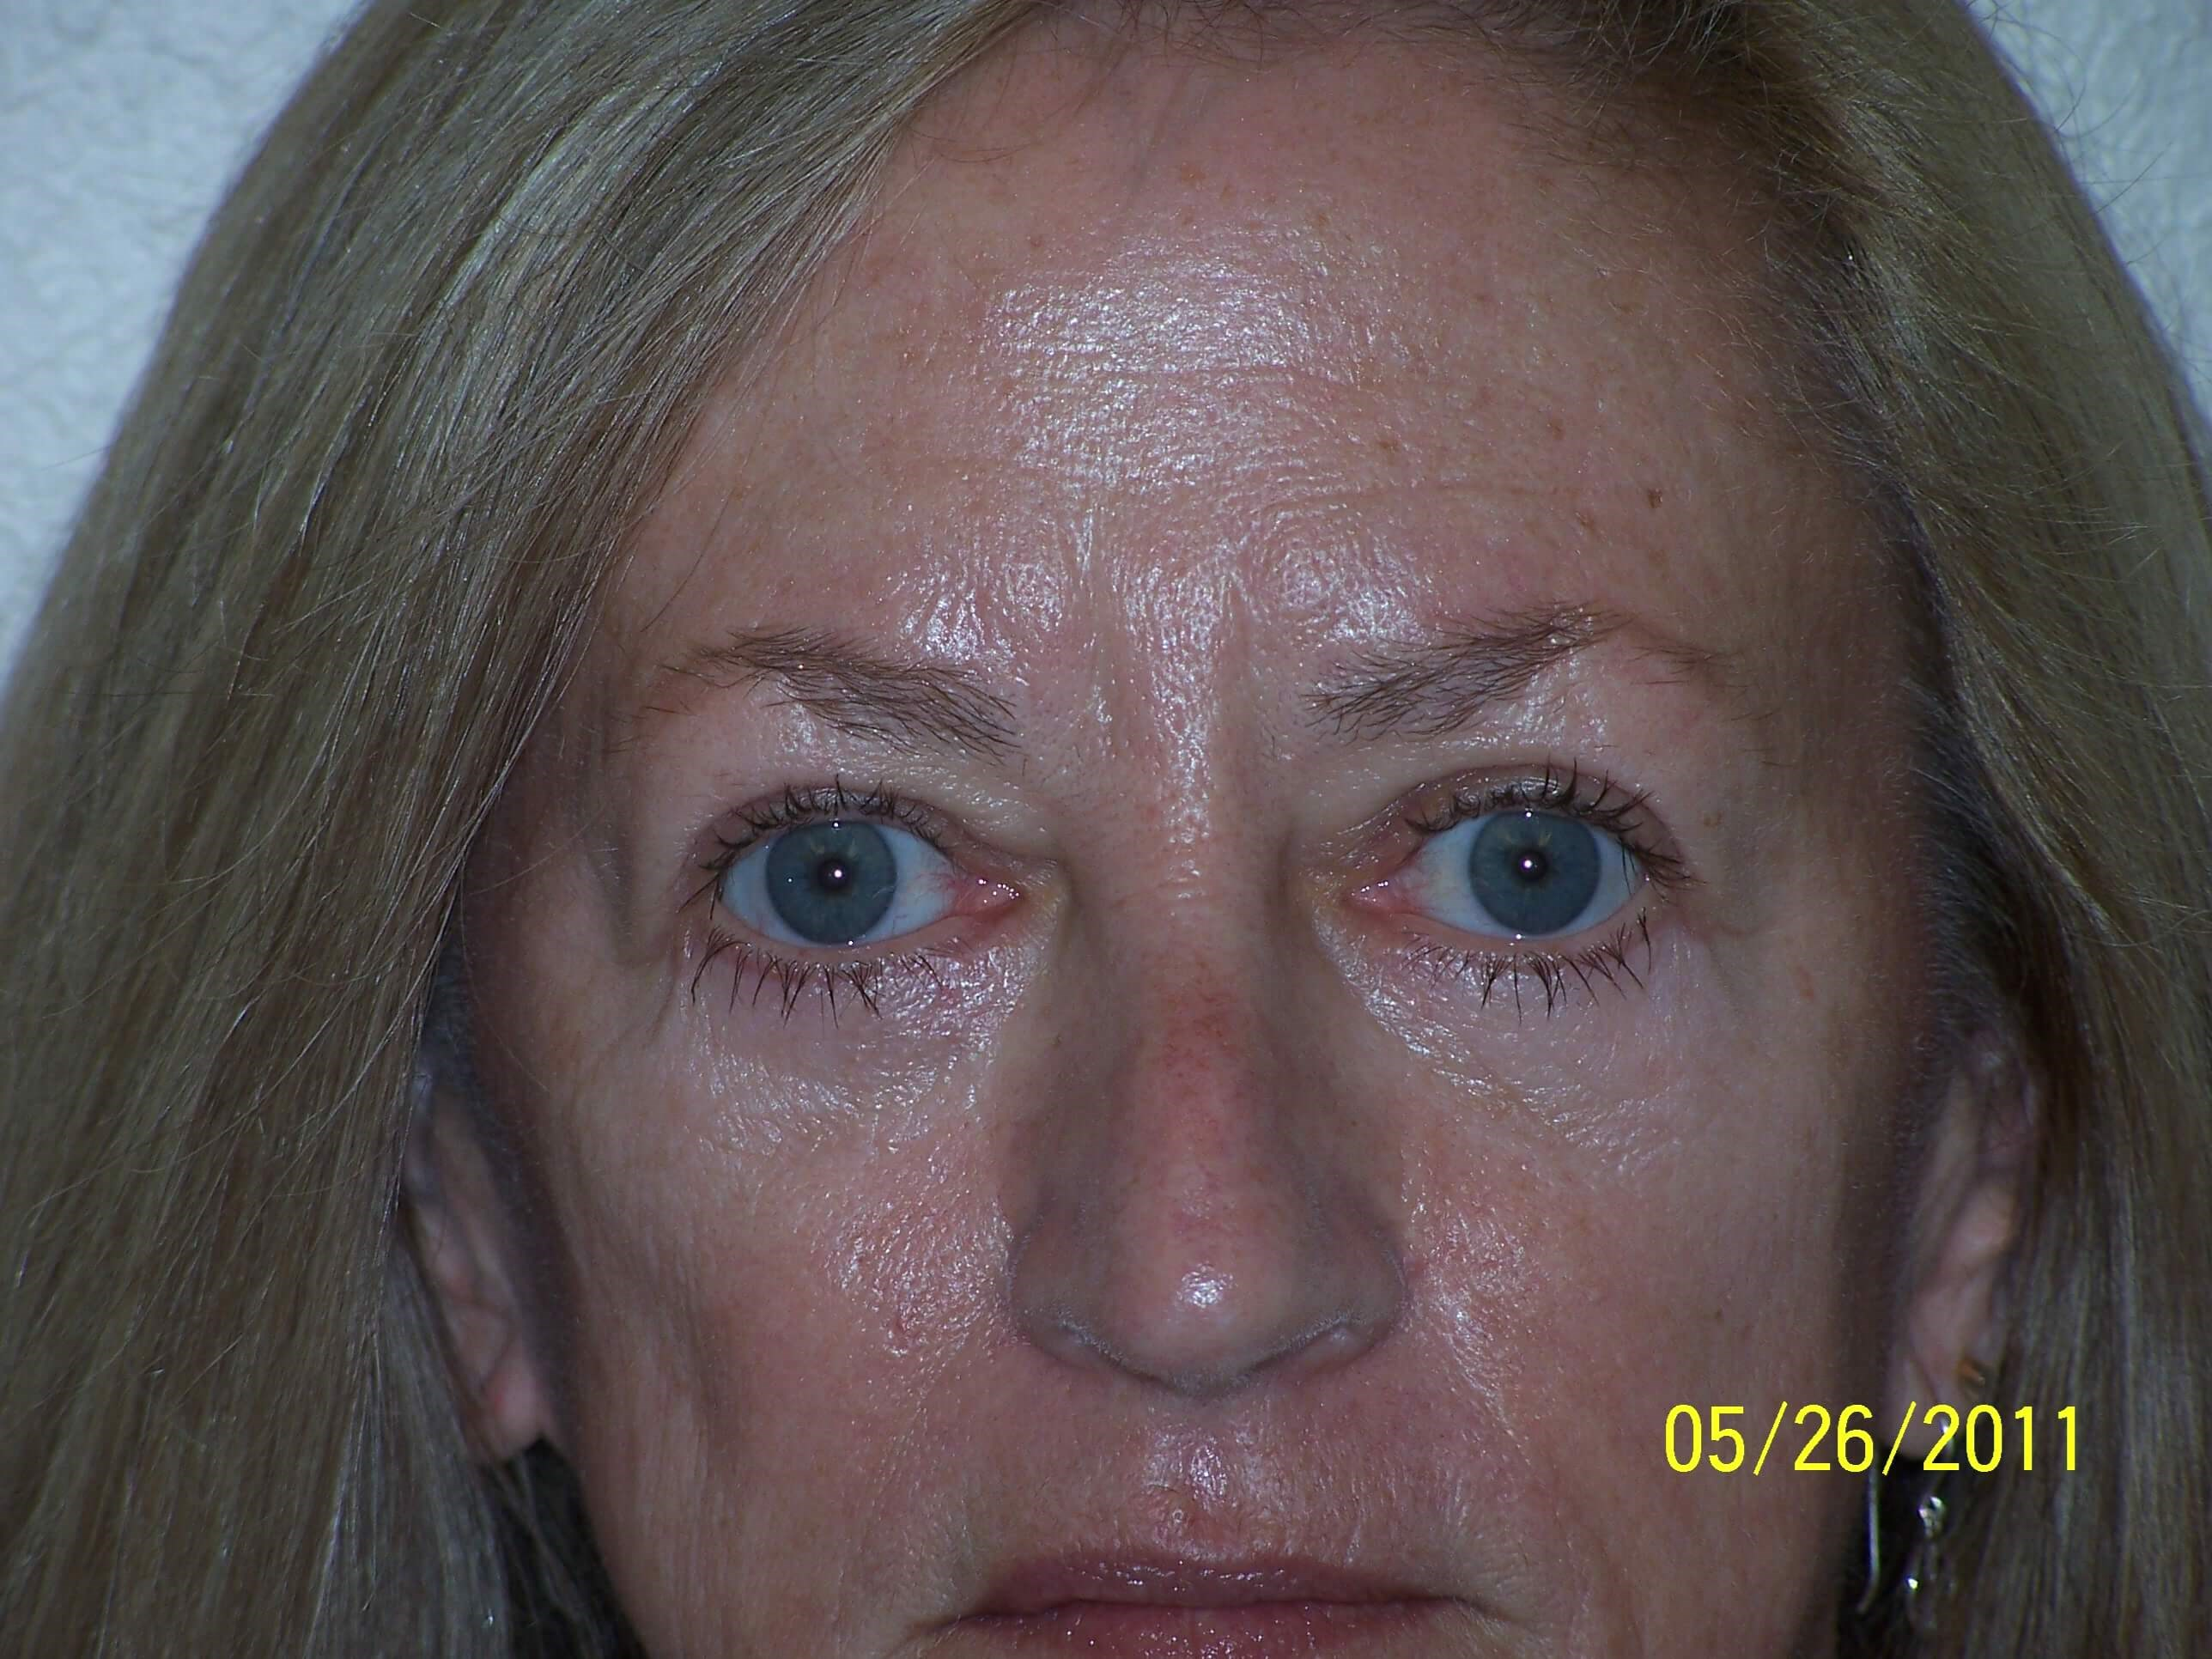 Eyelid surgery/blepharoplasty After